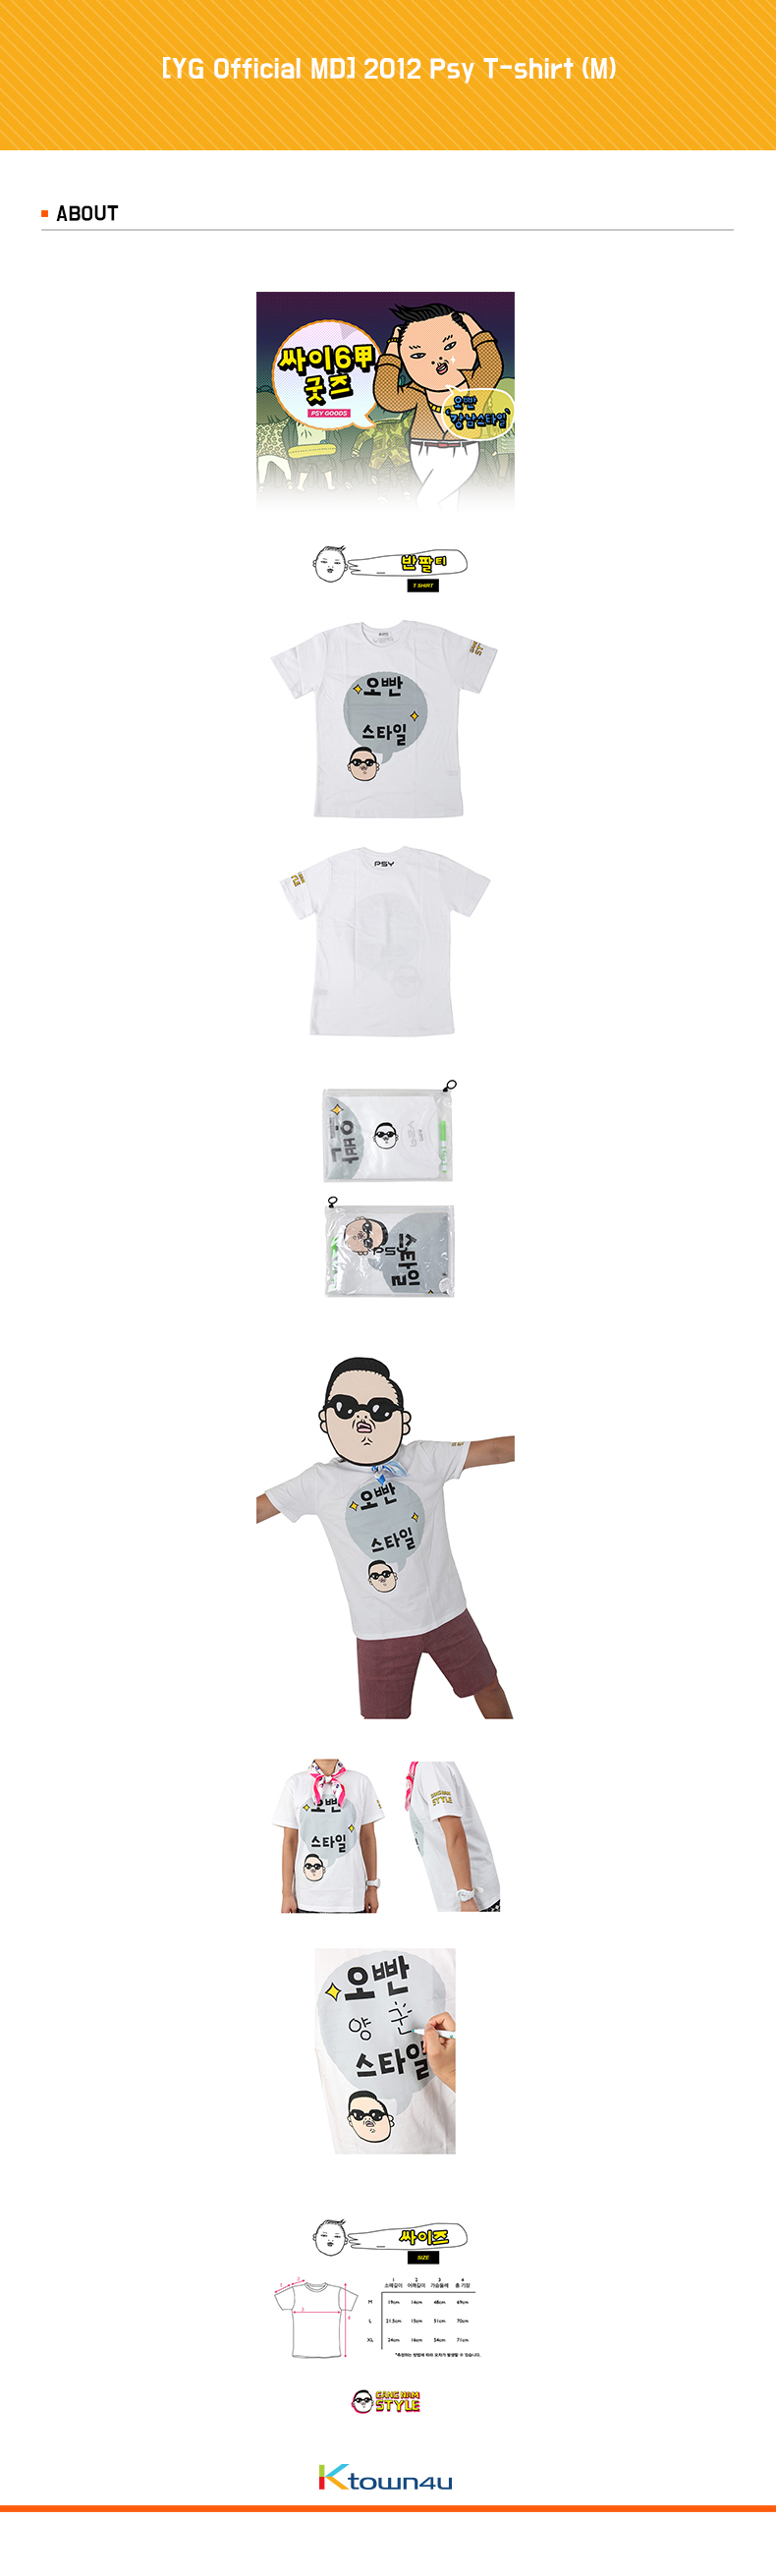 [YG Official MD] 2012 Psy T-shirt (M)